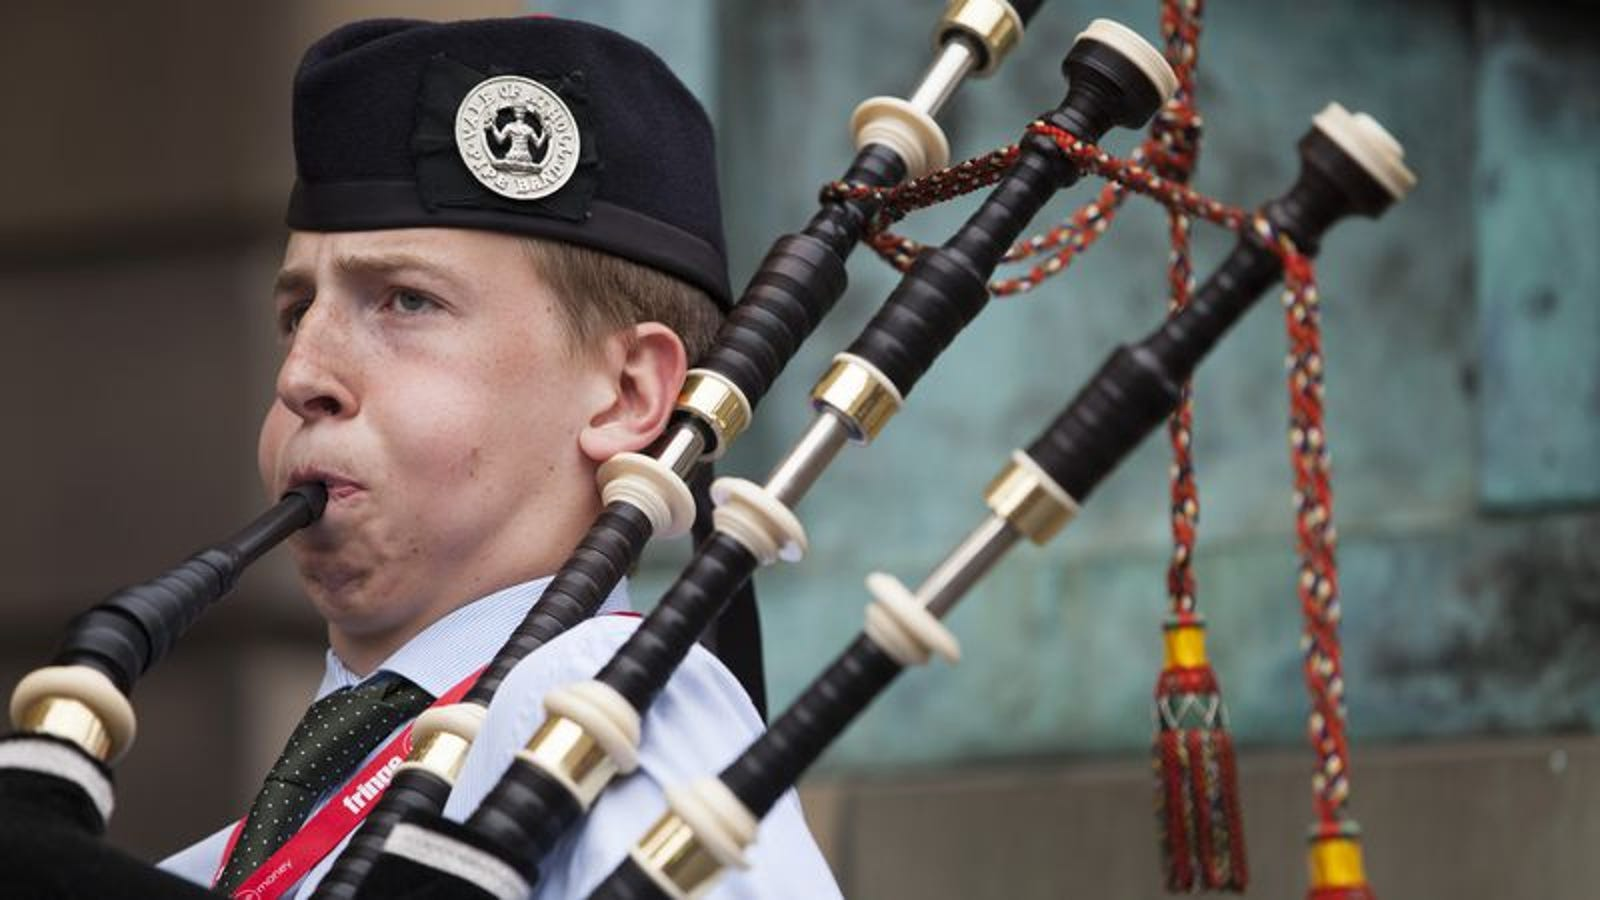 Dream pipes: 16 songs that are actually improved by bagpipes